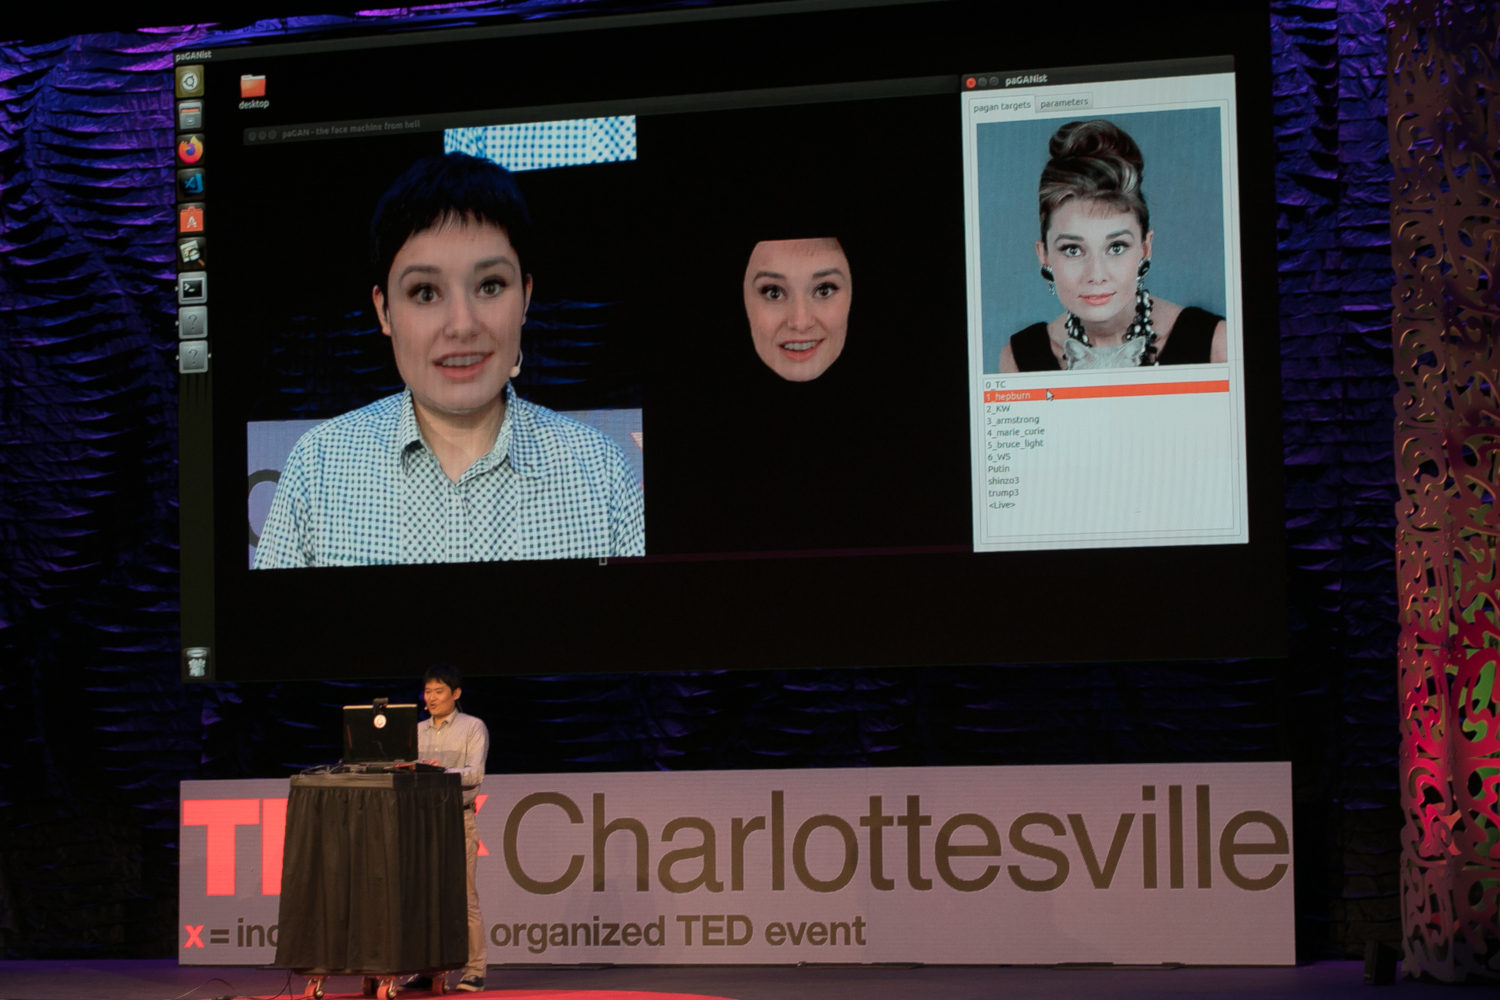 Koki Nagano discusses the future of virtual humans and deepfakes at TEDxCharlottesville in Charlottesville, Virginia on November 8, 2019. (credits: Edmond Joe / TEDx Charlottesville / Flickr Creative Commons Attribution-NonCommercial-NoDerivs 2.0 Generic (CC BY-NC-ND 2.0))